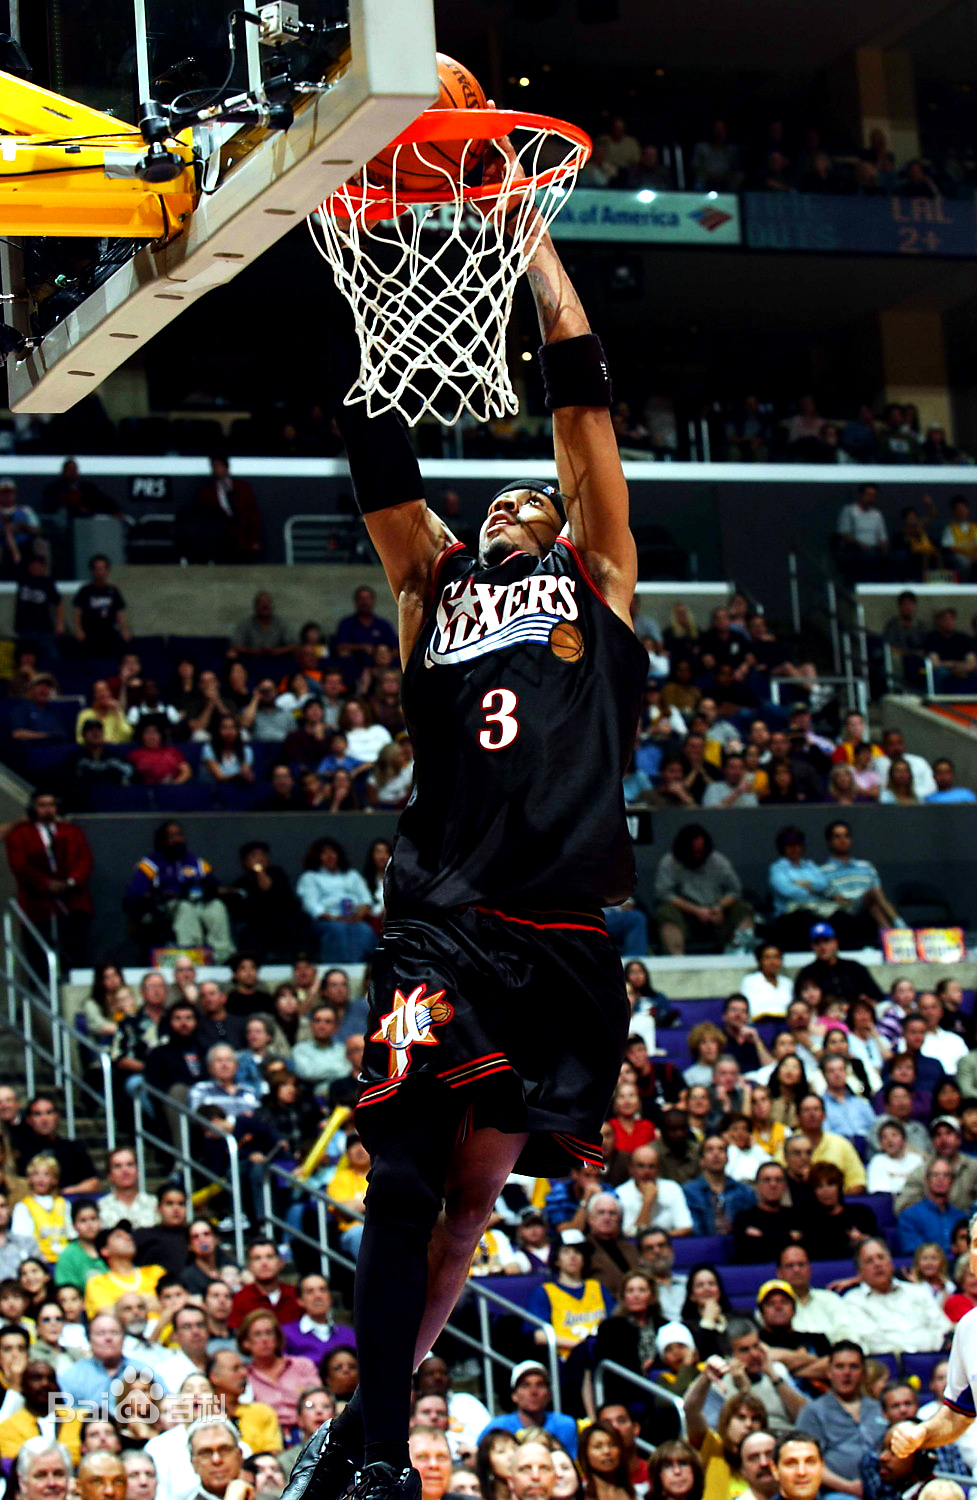 19985 together with Marion Bartoli French Player Tennis together with 608 Kyrie Irving together with 203506476888941813 besides Elearning Solutions 5 Ways Balance Time Cost Quality Triad. on allen iverson